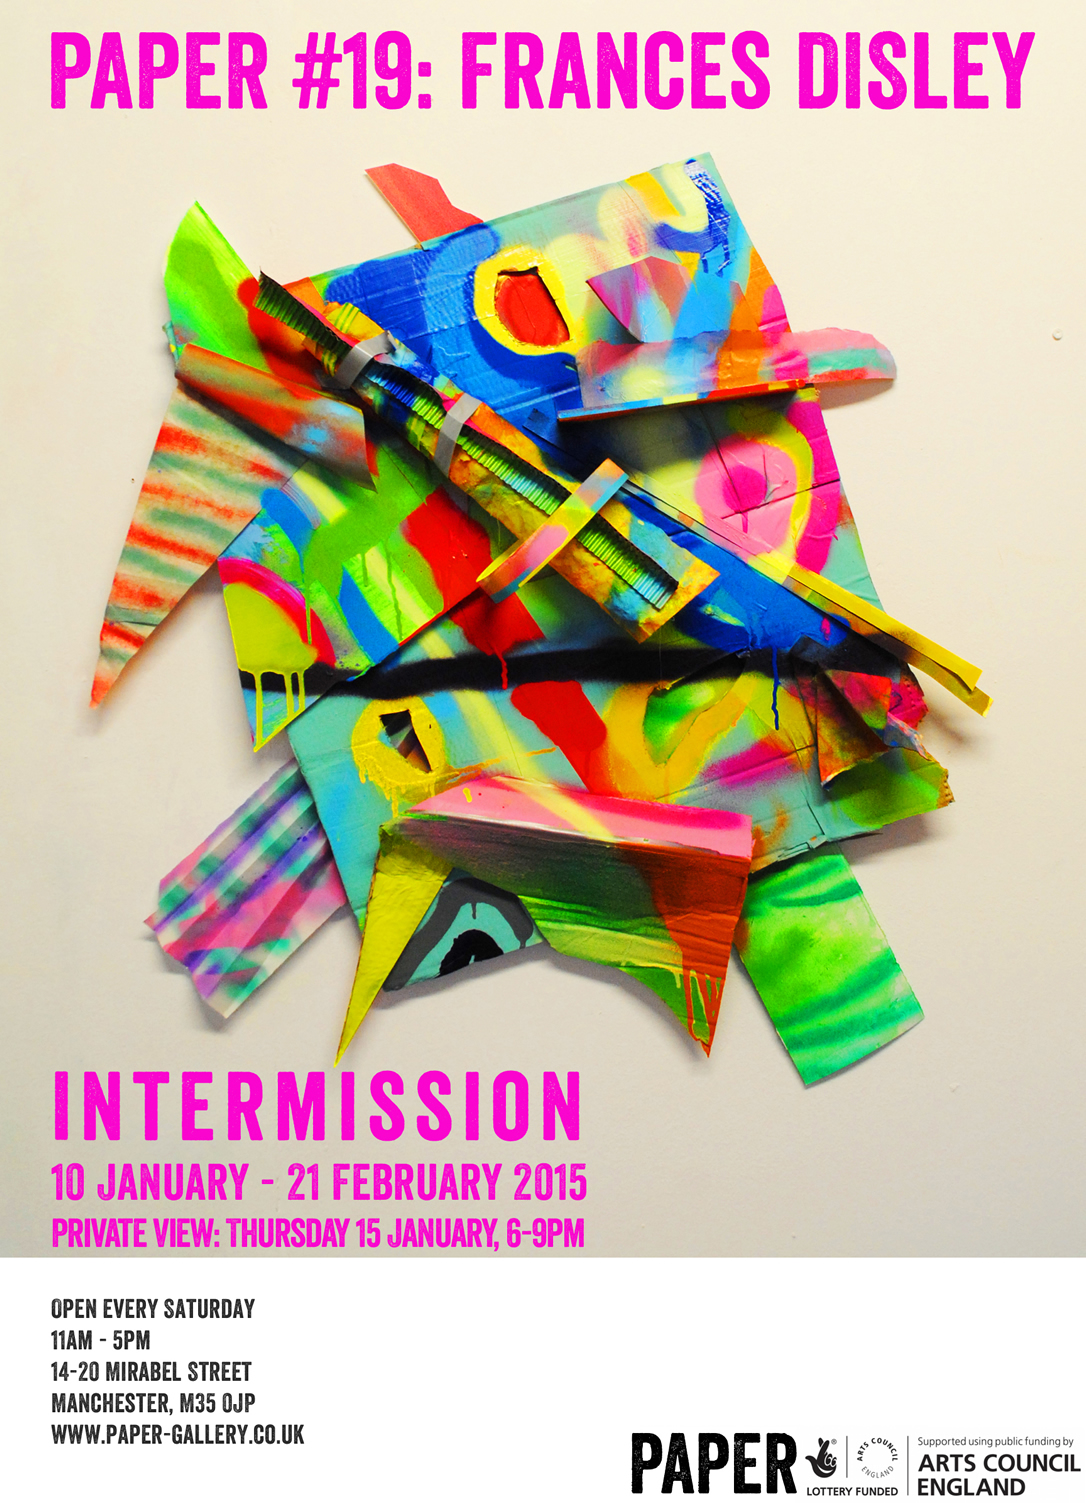 PAPER 19: Frances Disley - Intermission